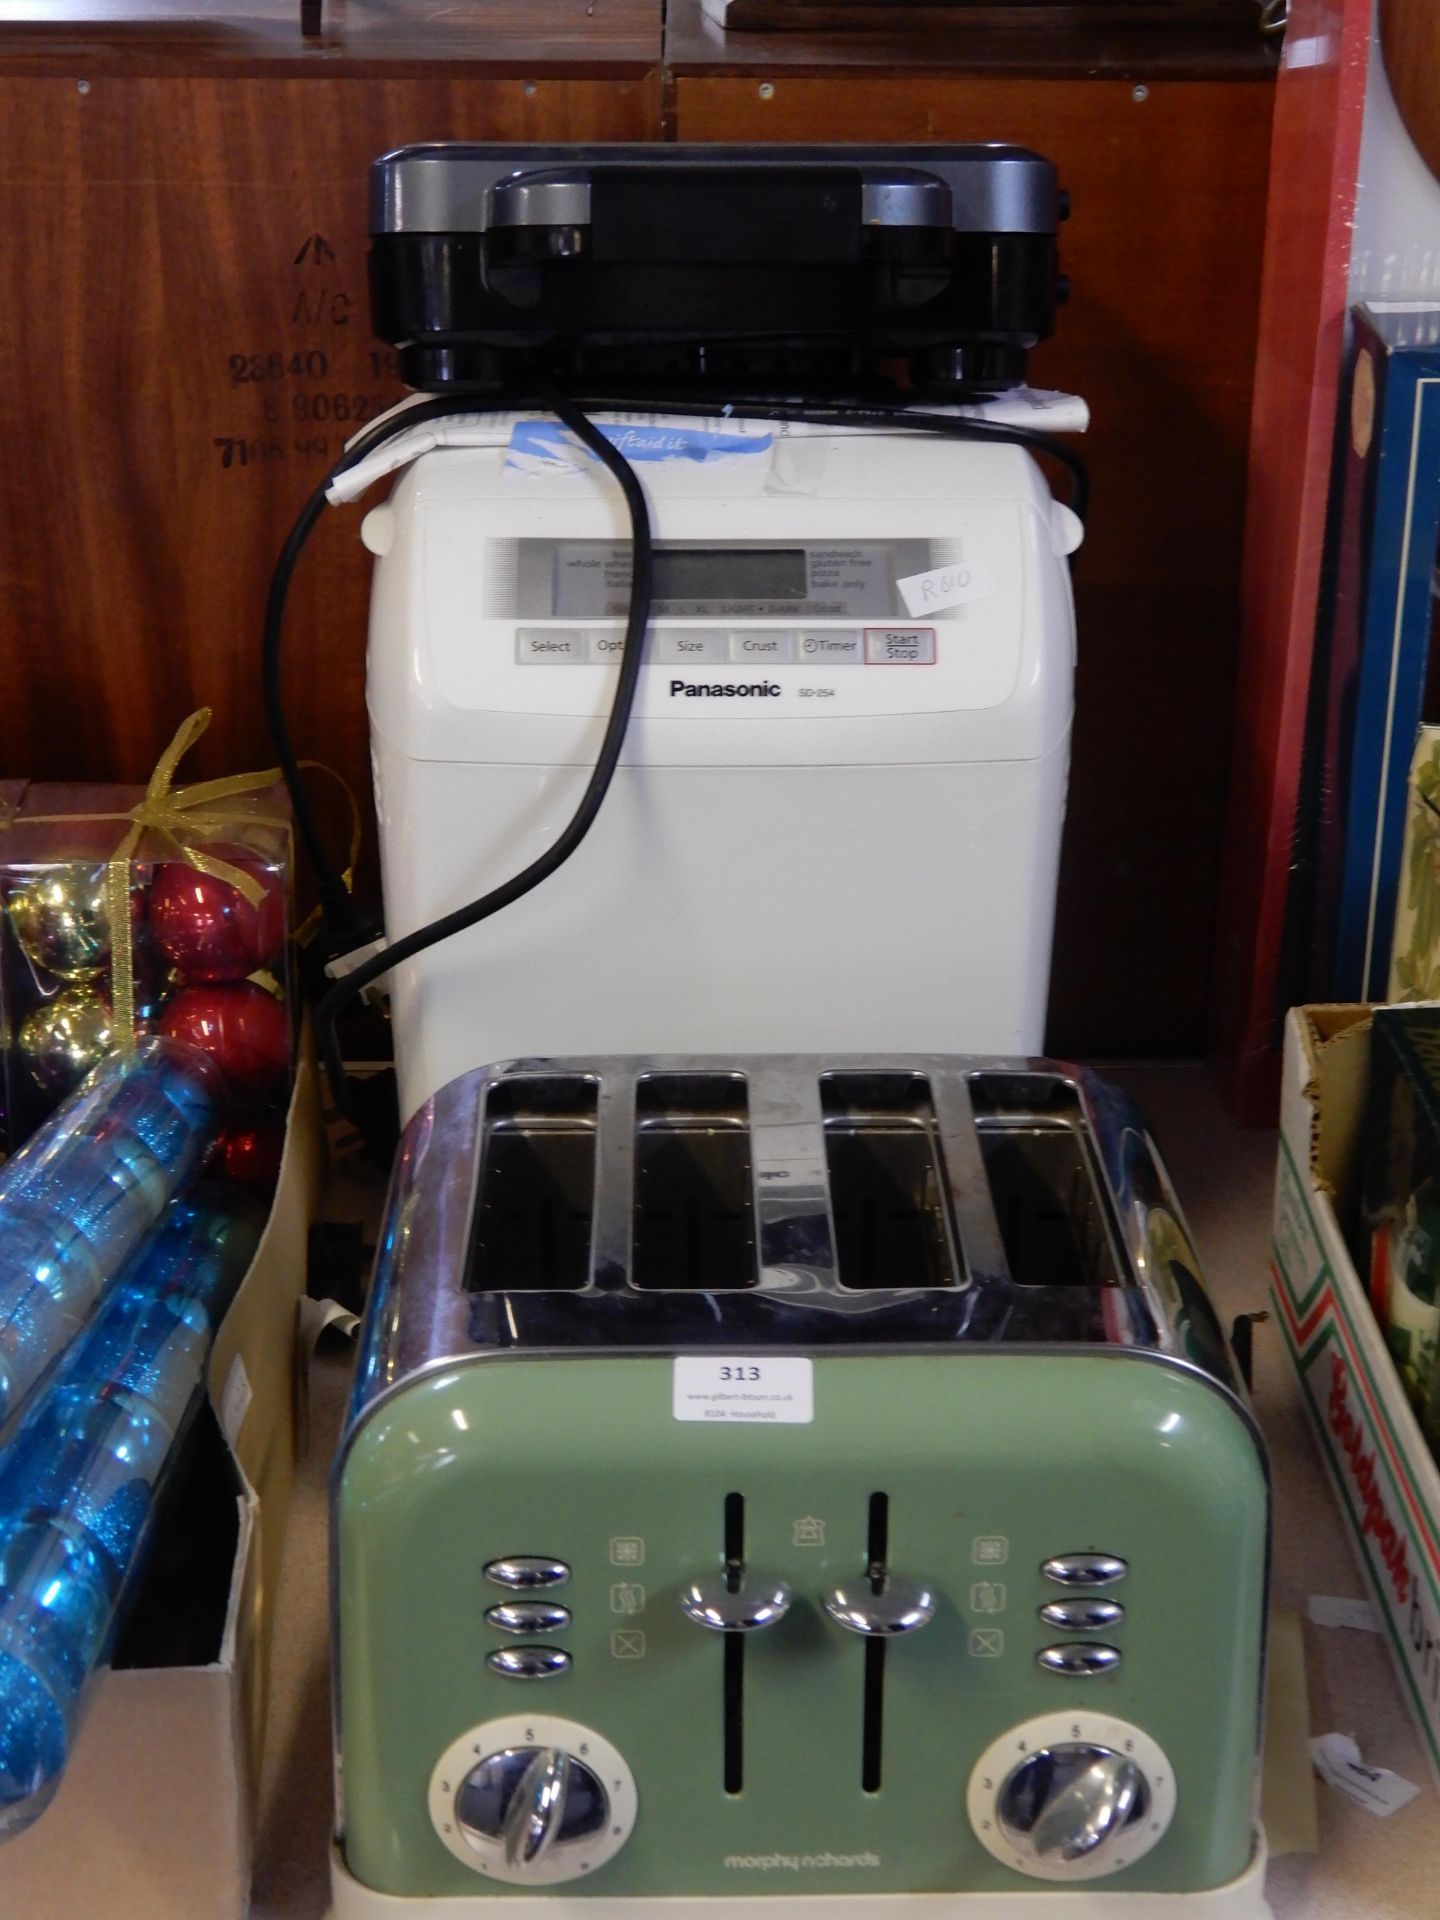 Lot 313 - Morphy Richards Toaster, Panasonic Bread Maker, an